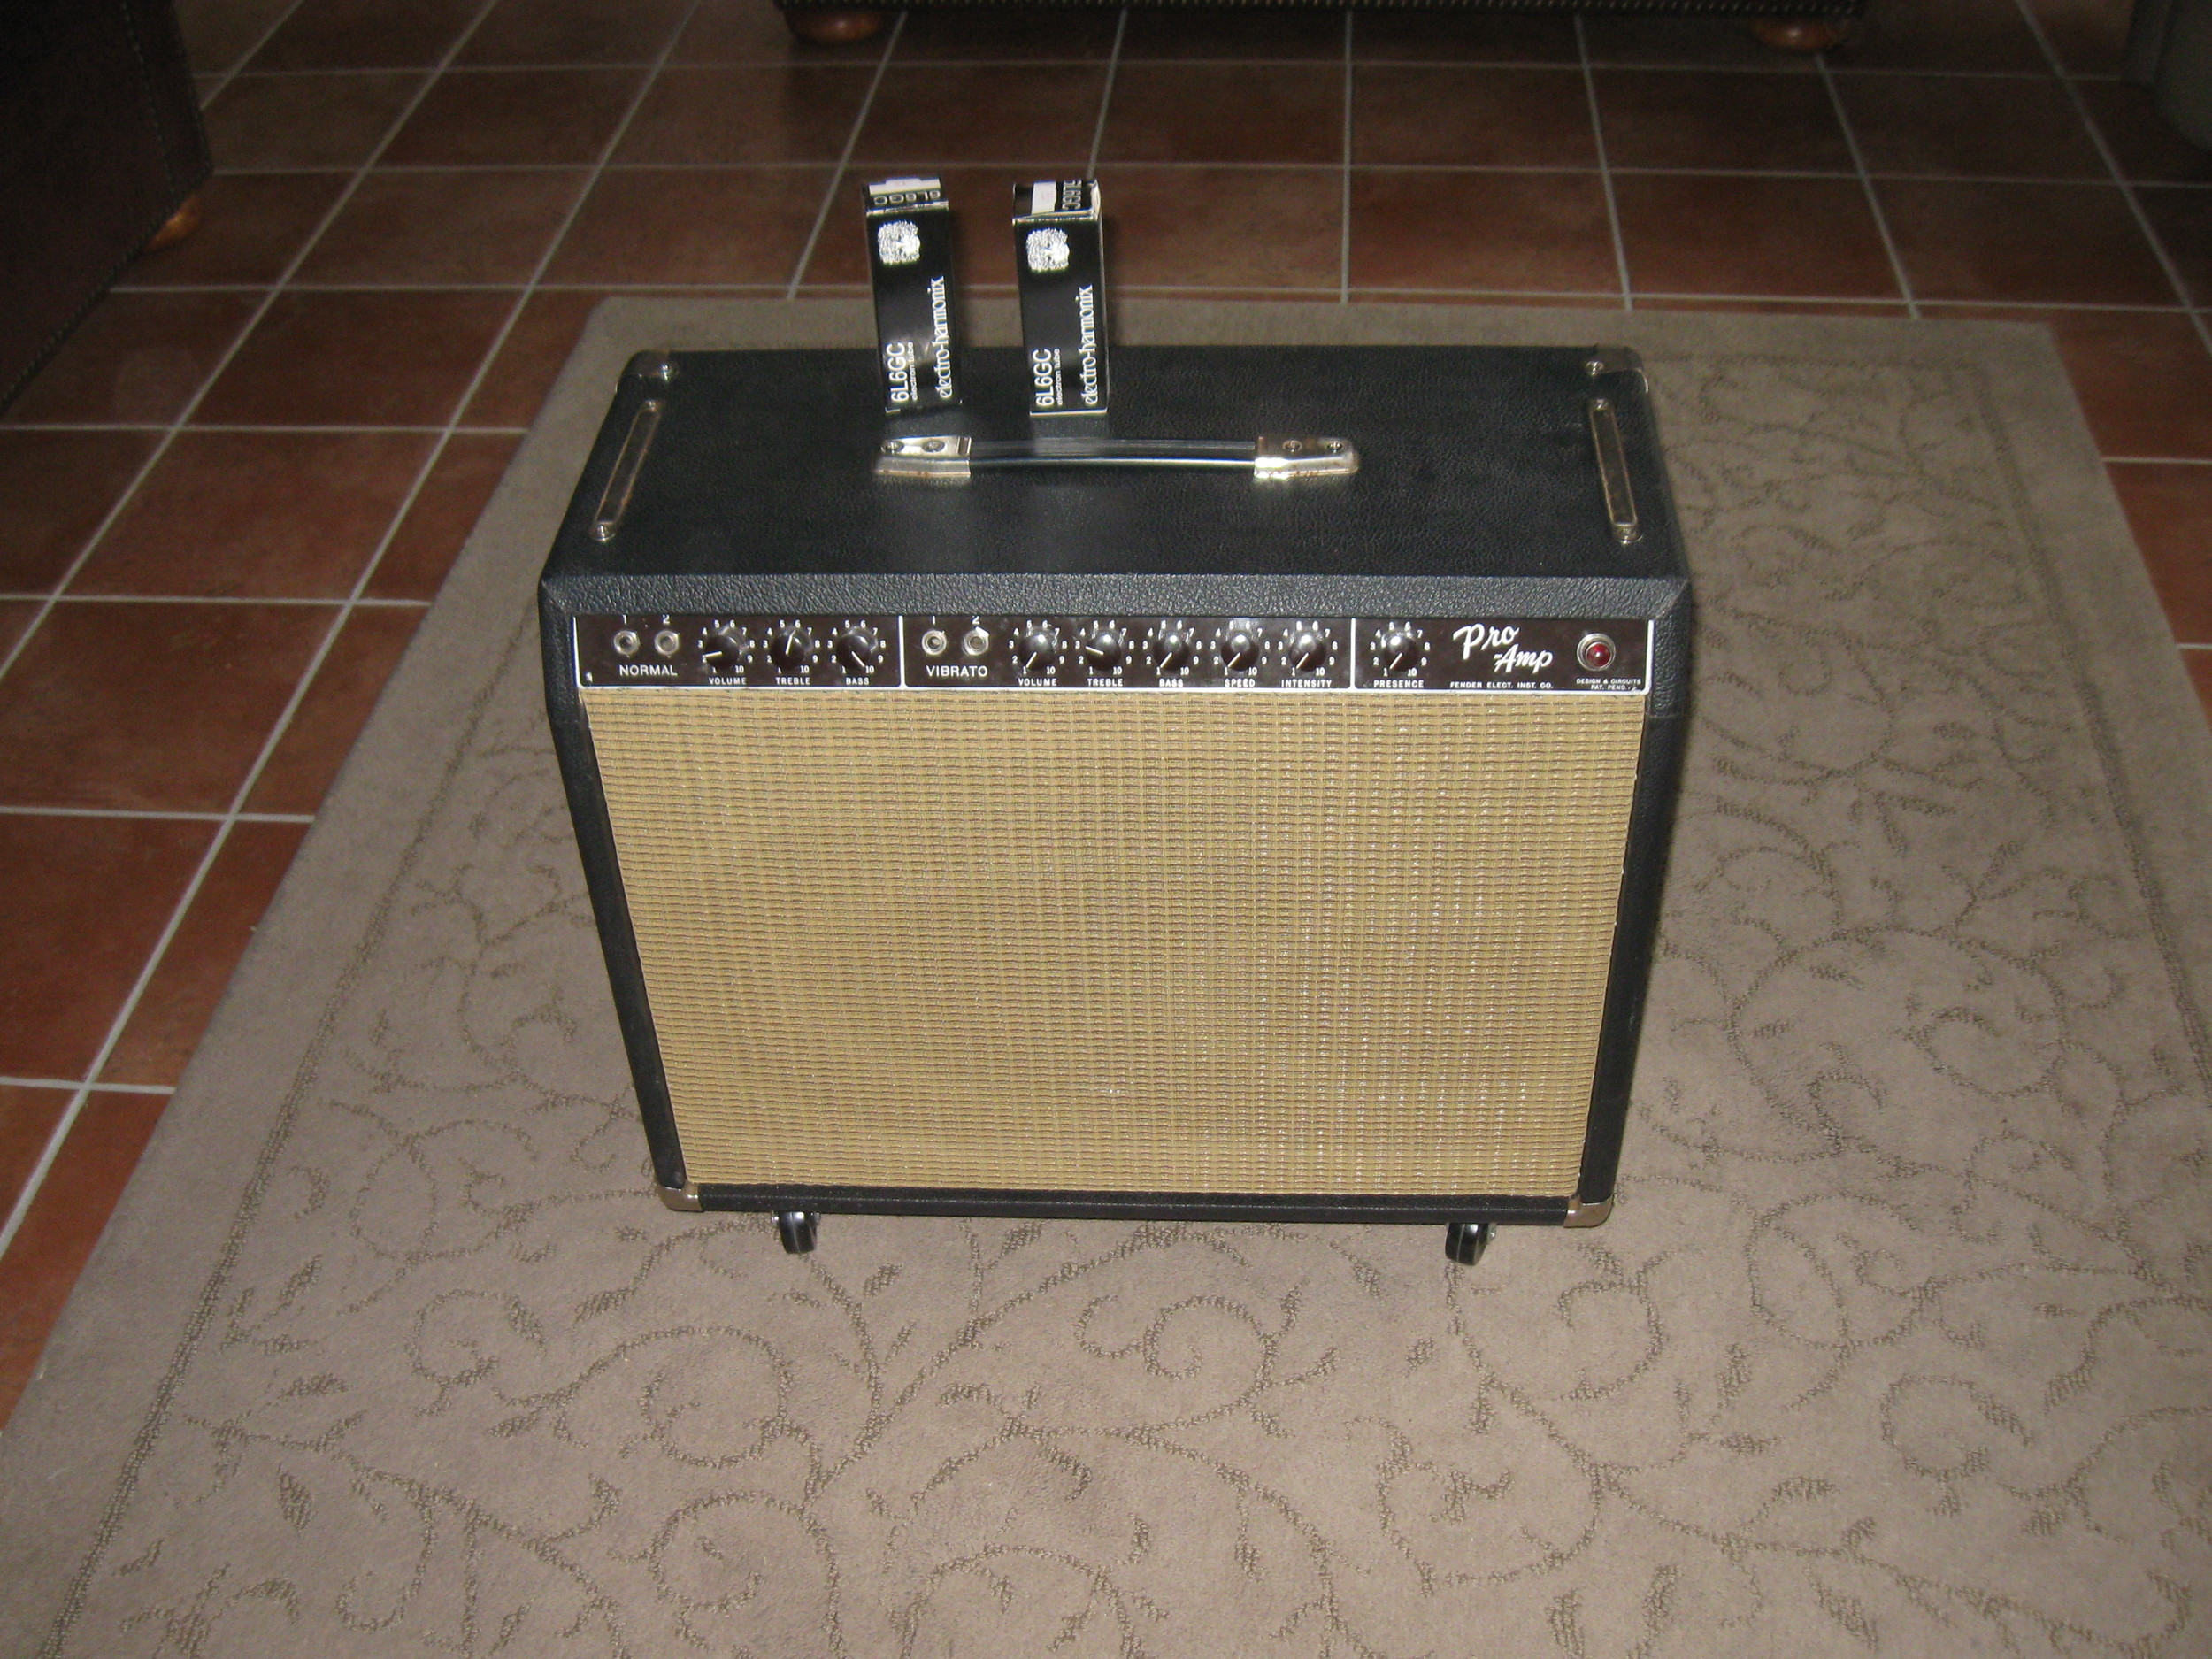 Fender Brownface Pro. It came in as just a chassis and a non-original cab. Once a few components were switched out, it was re-tubed, the grill cloth was replaced, casters were added and a Weber 50 Watt Alnico Speaker was put in. Man this thing was cool!